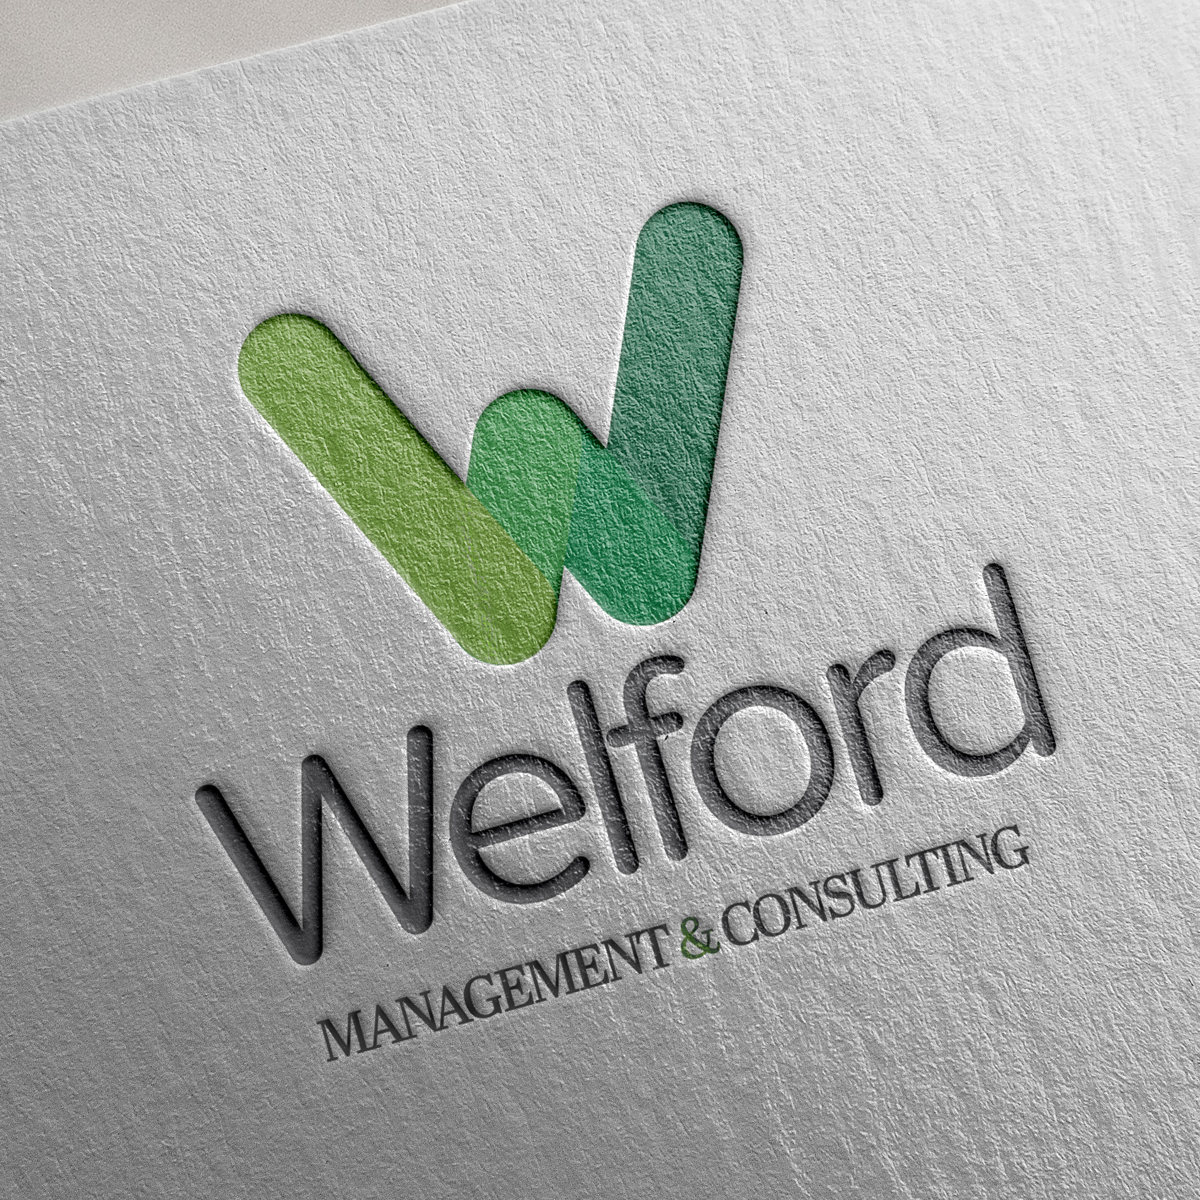 Welford Management & Consulting Logo